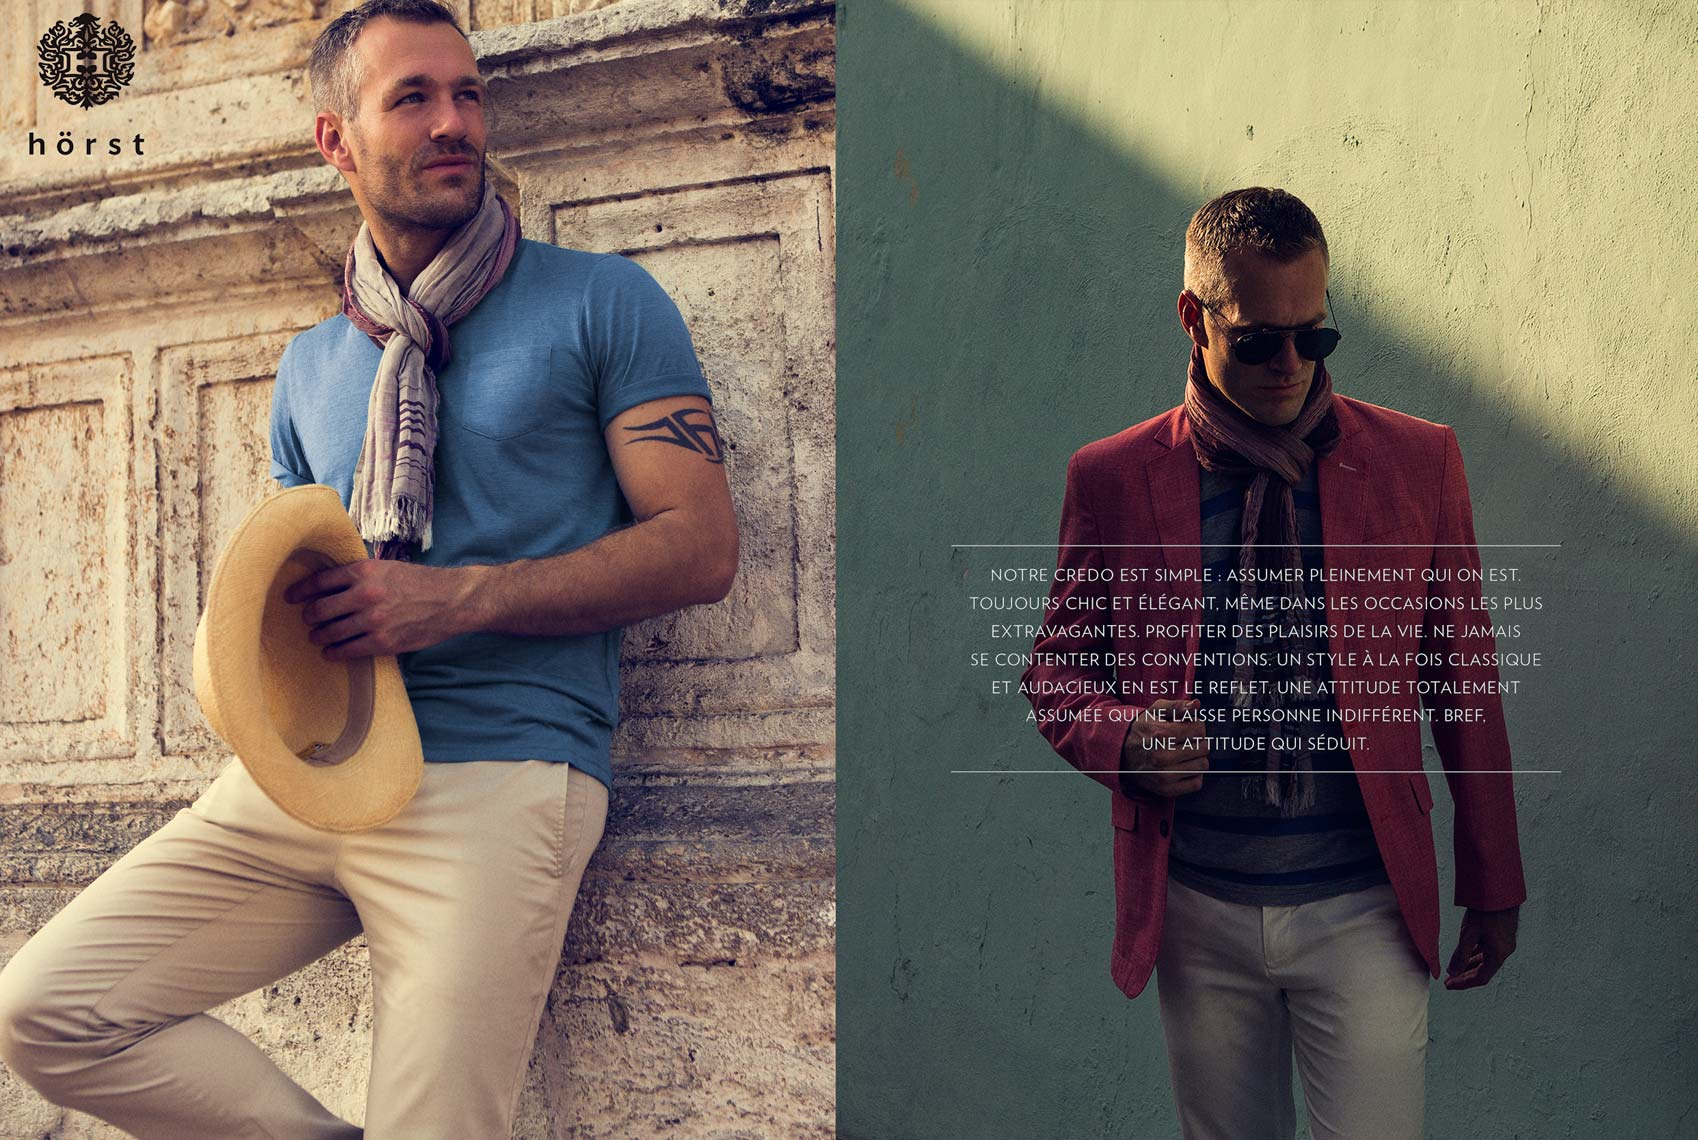 Chris-Hunt-Photography-Men-Fashion-Advertising-4151